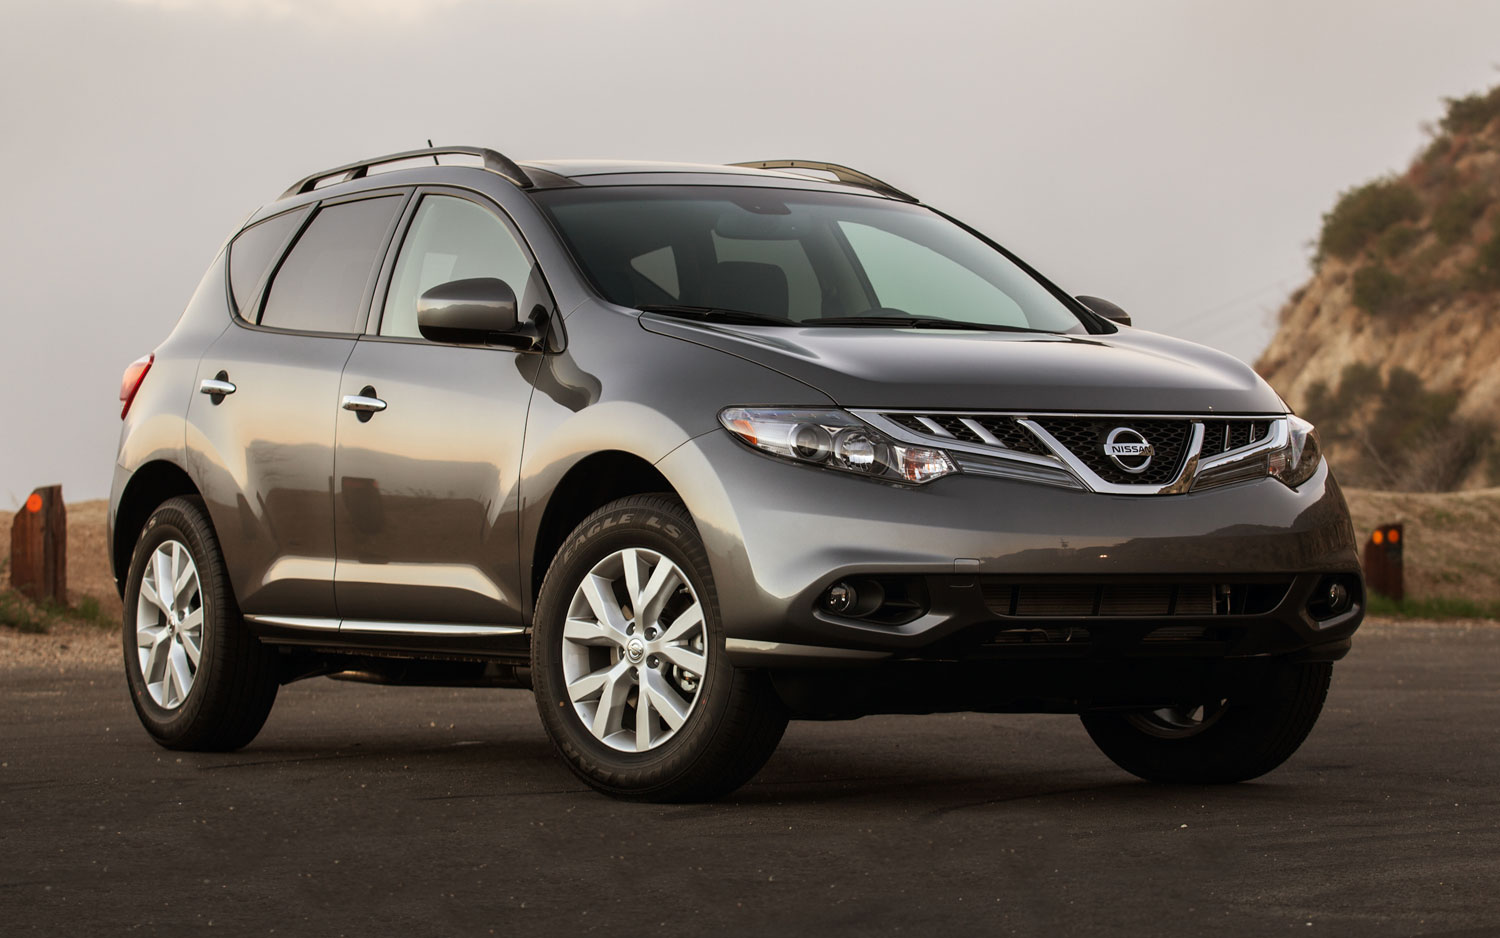 2013 nissan rogue information and photos zombiedrive 2013 nissan rogue 19 nissan rogue 19 vanachro Gallery